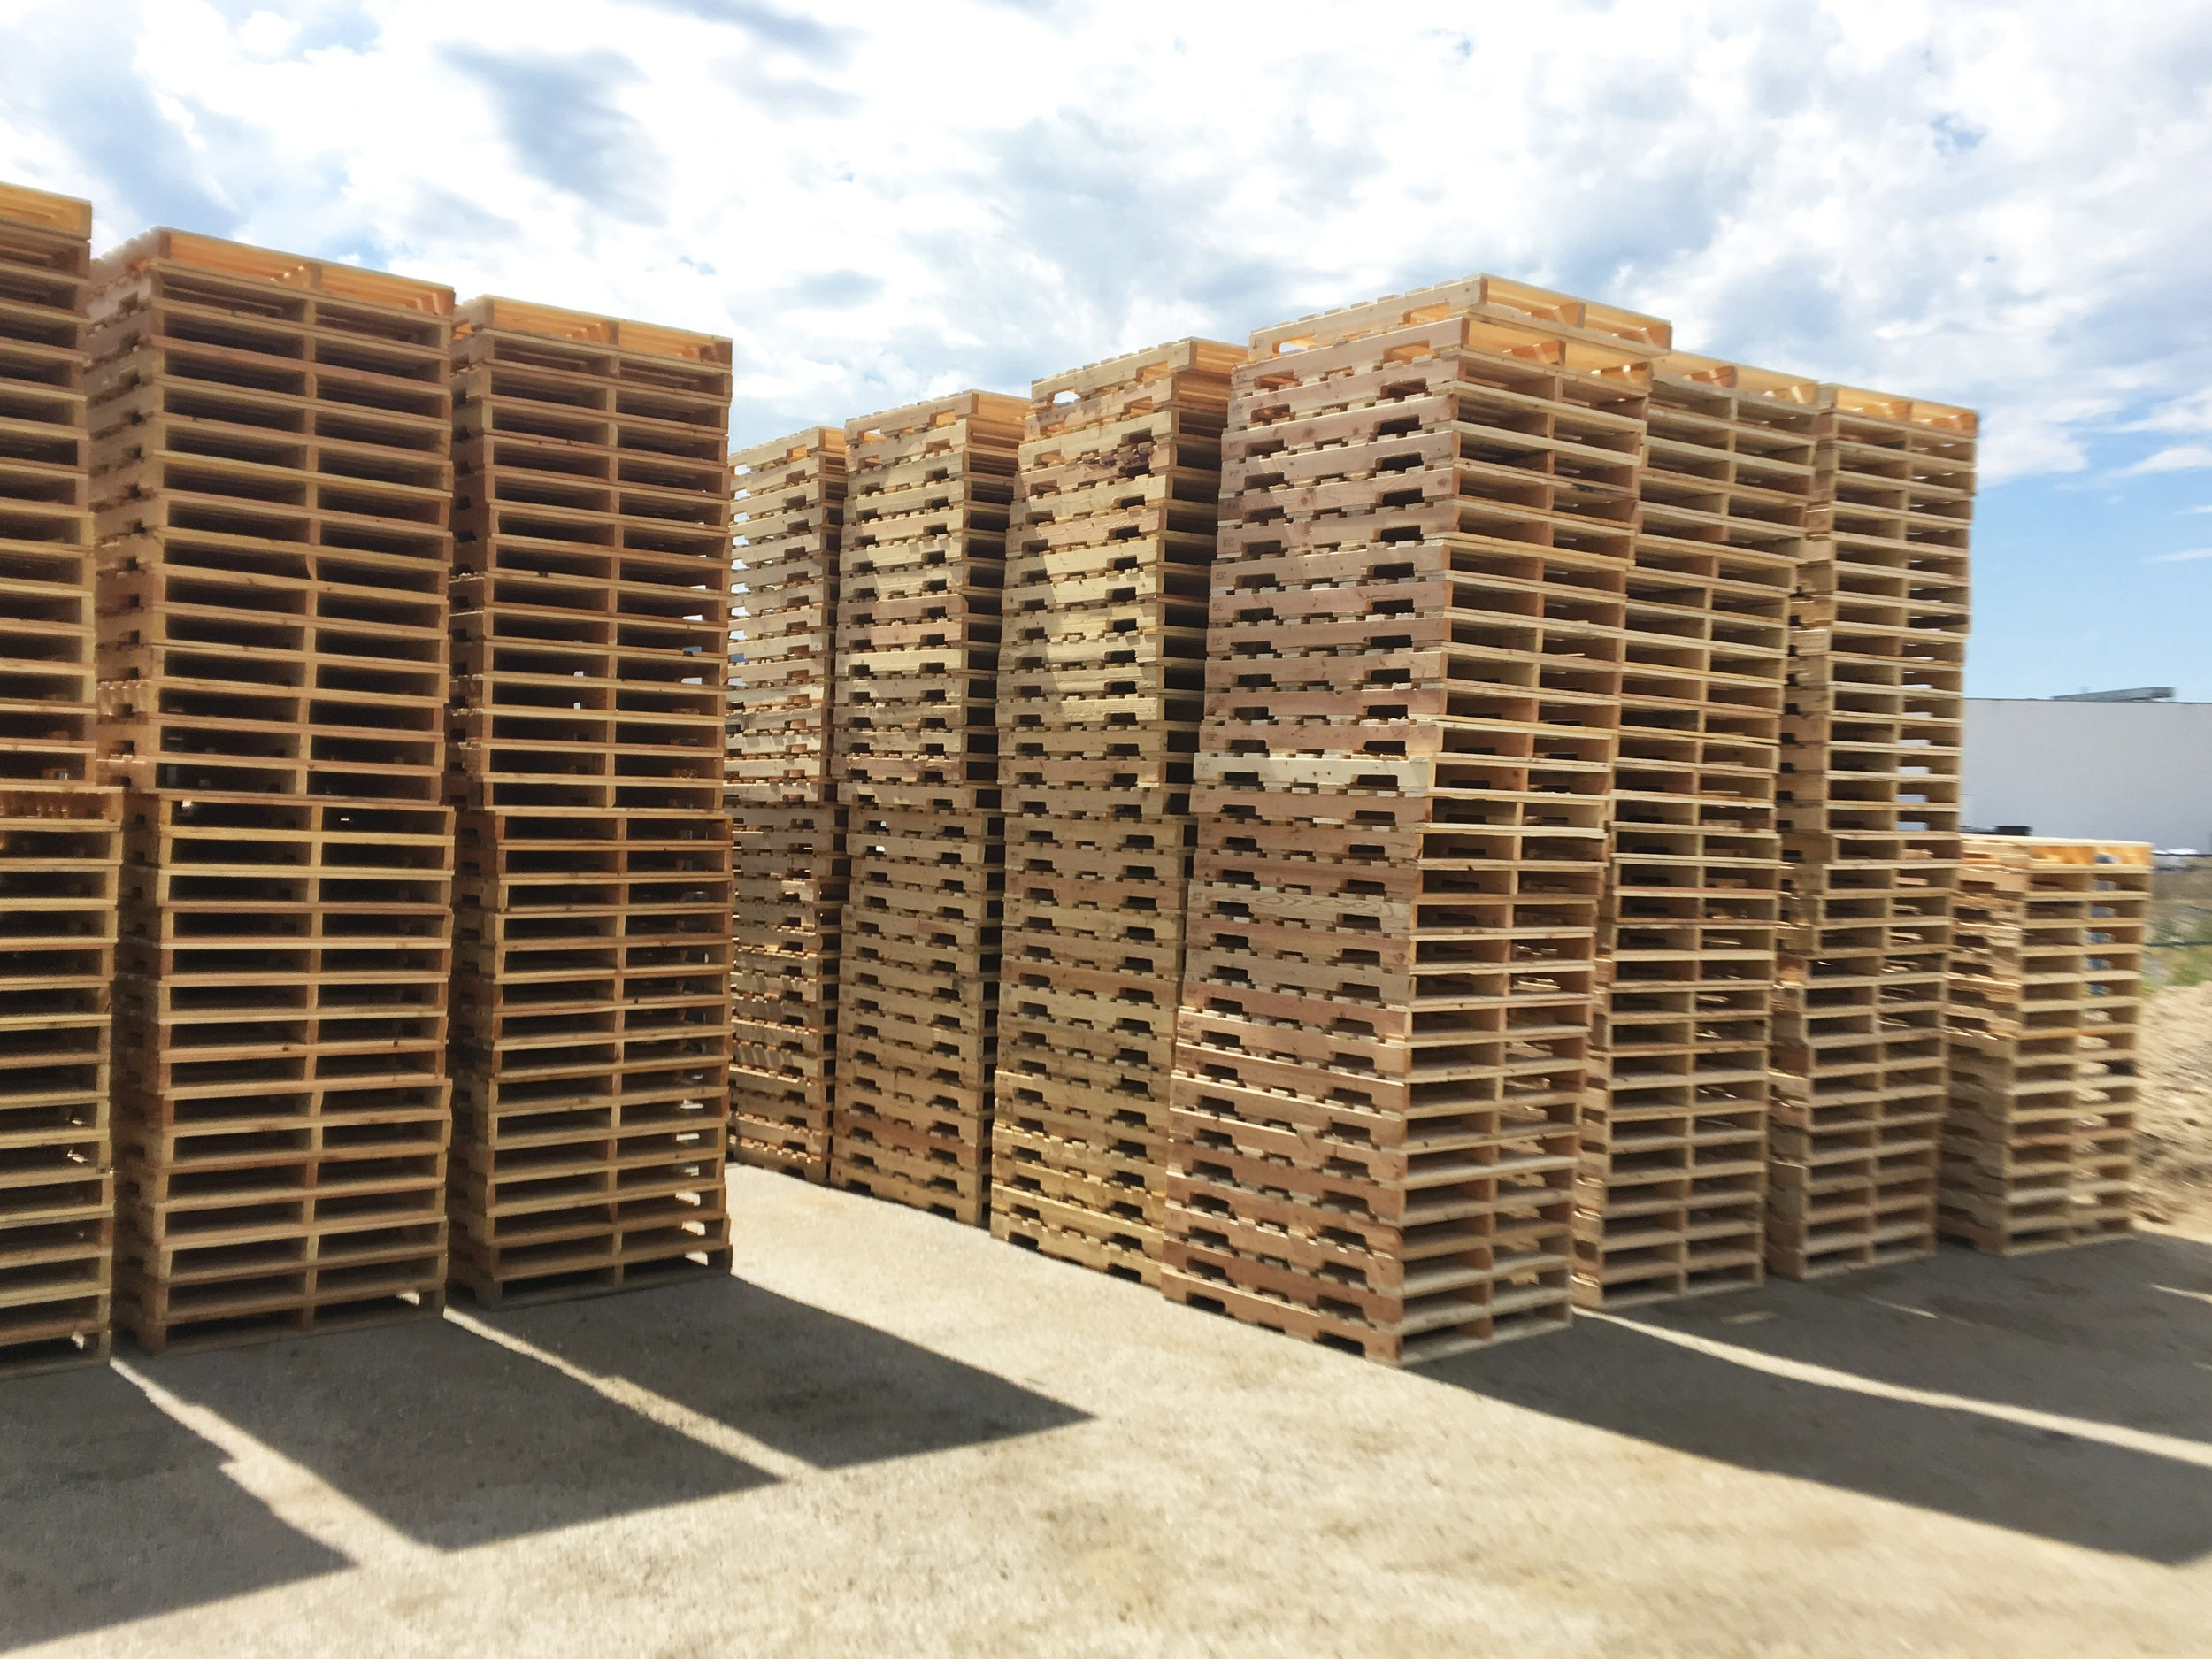 Pallets & Crating - Standard and custom pallets available. HT export pallets, crating, and more.